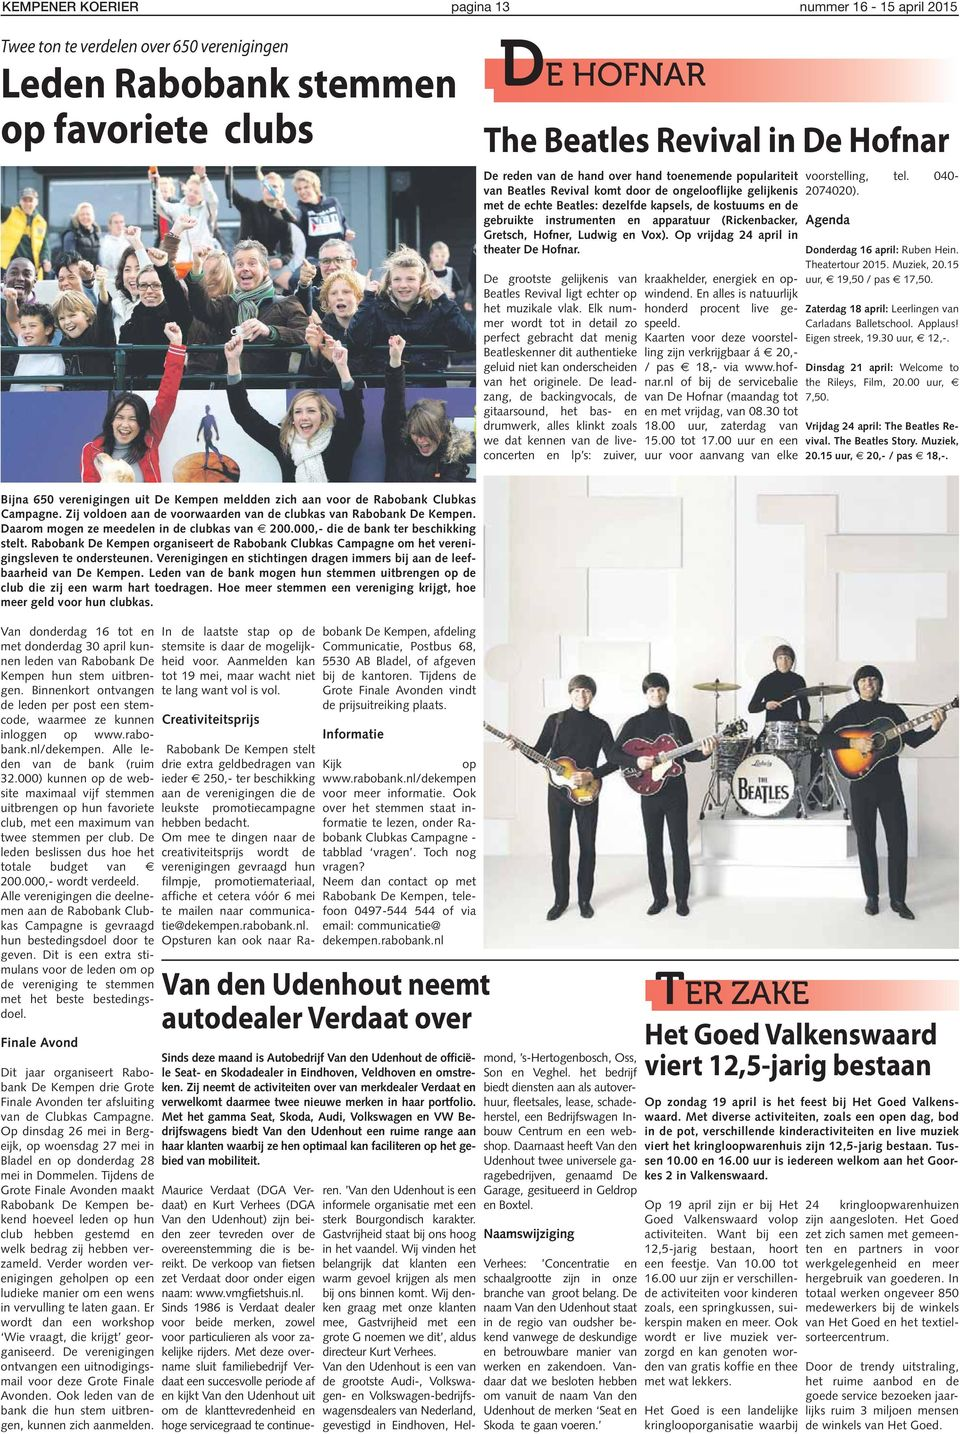 (Rickenbacker, Gretsch, Hofner, Ludwig en Vox). Op vrijdag 24 april in theater De Hofnar. De grootste gelijkenis van Beatles Revival ligt echter op het muzikale vlak.